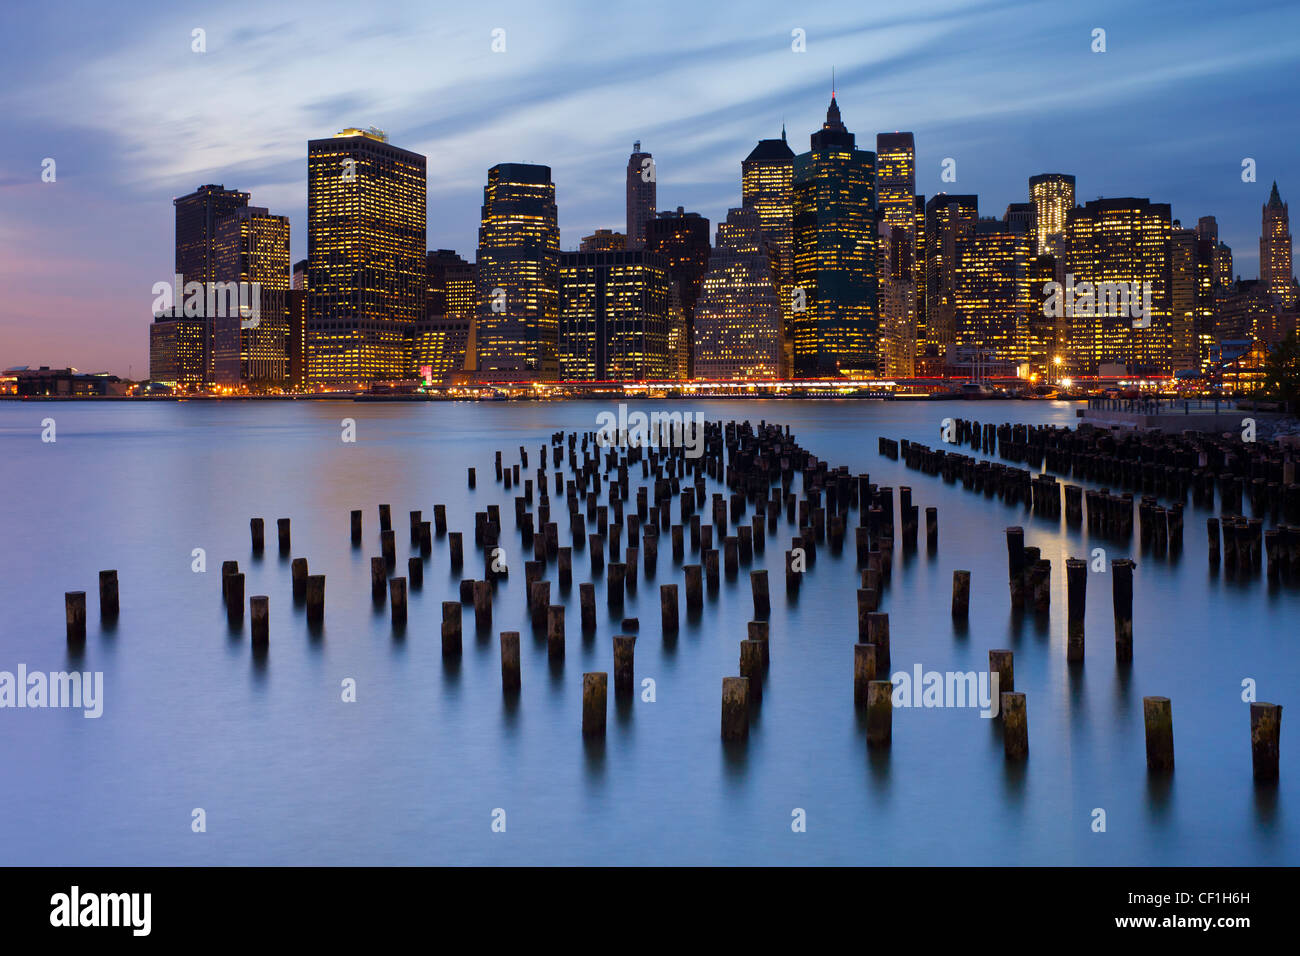 United States of America, New York, Dusk view of the skyscrapers of Manhattan from the Brooklyn Heights neighborhood. - Stock Image